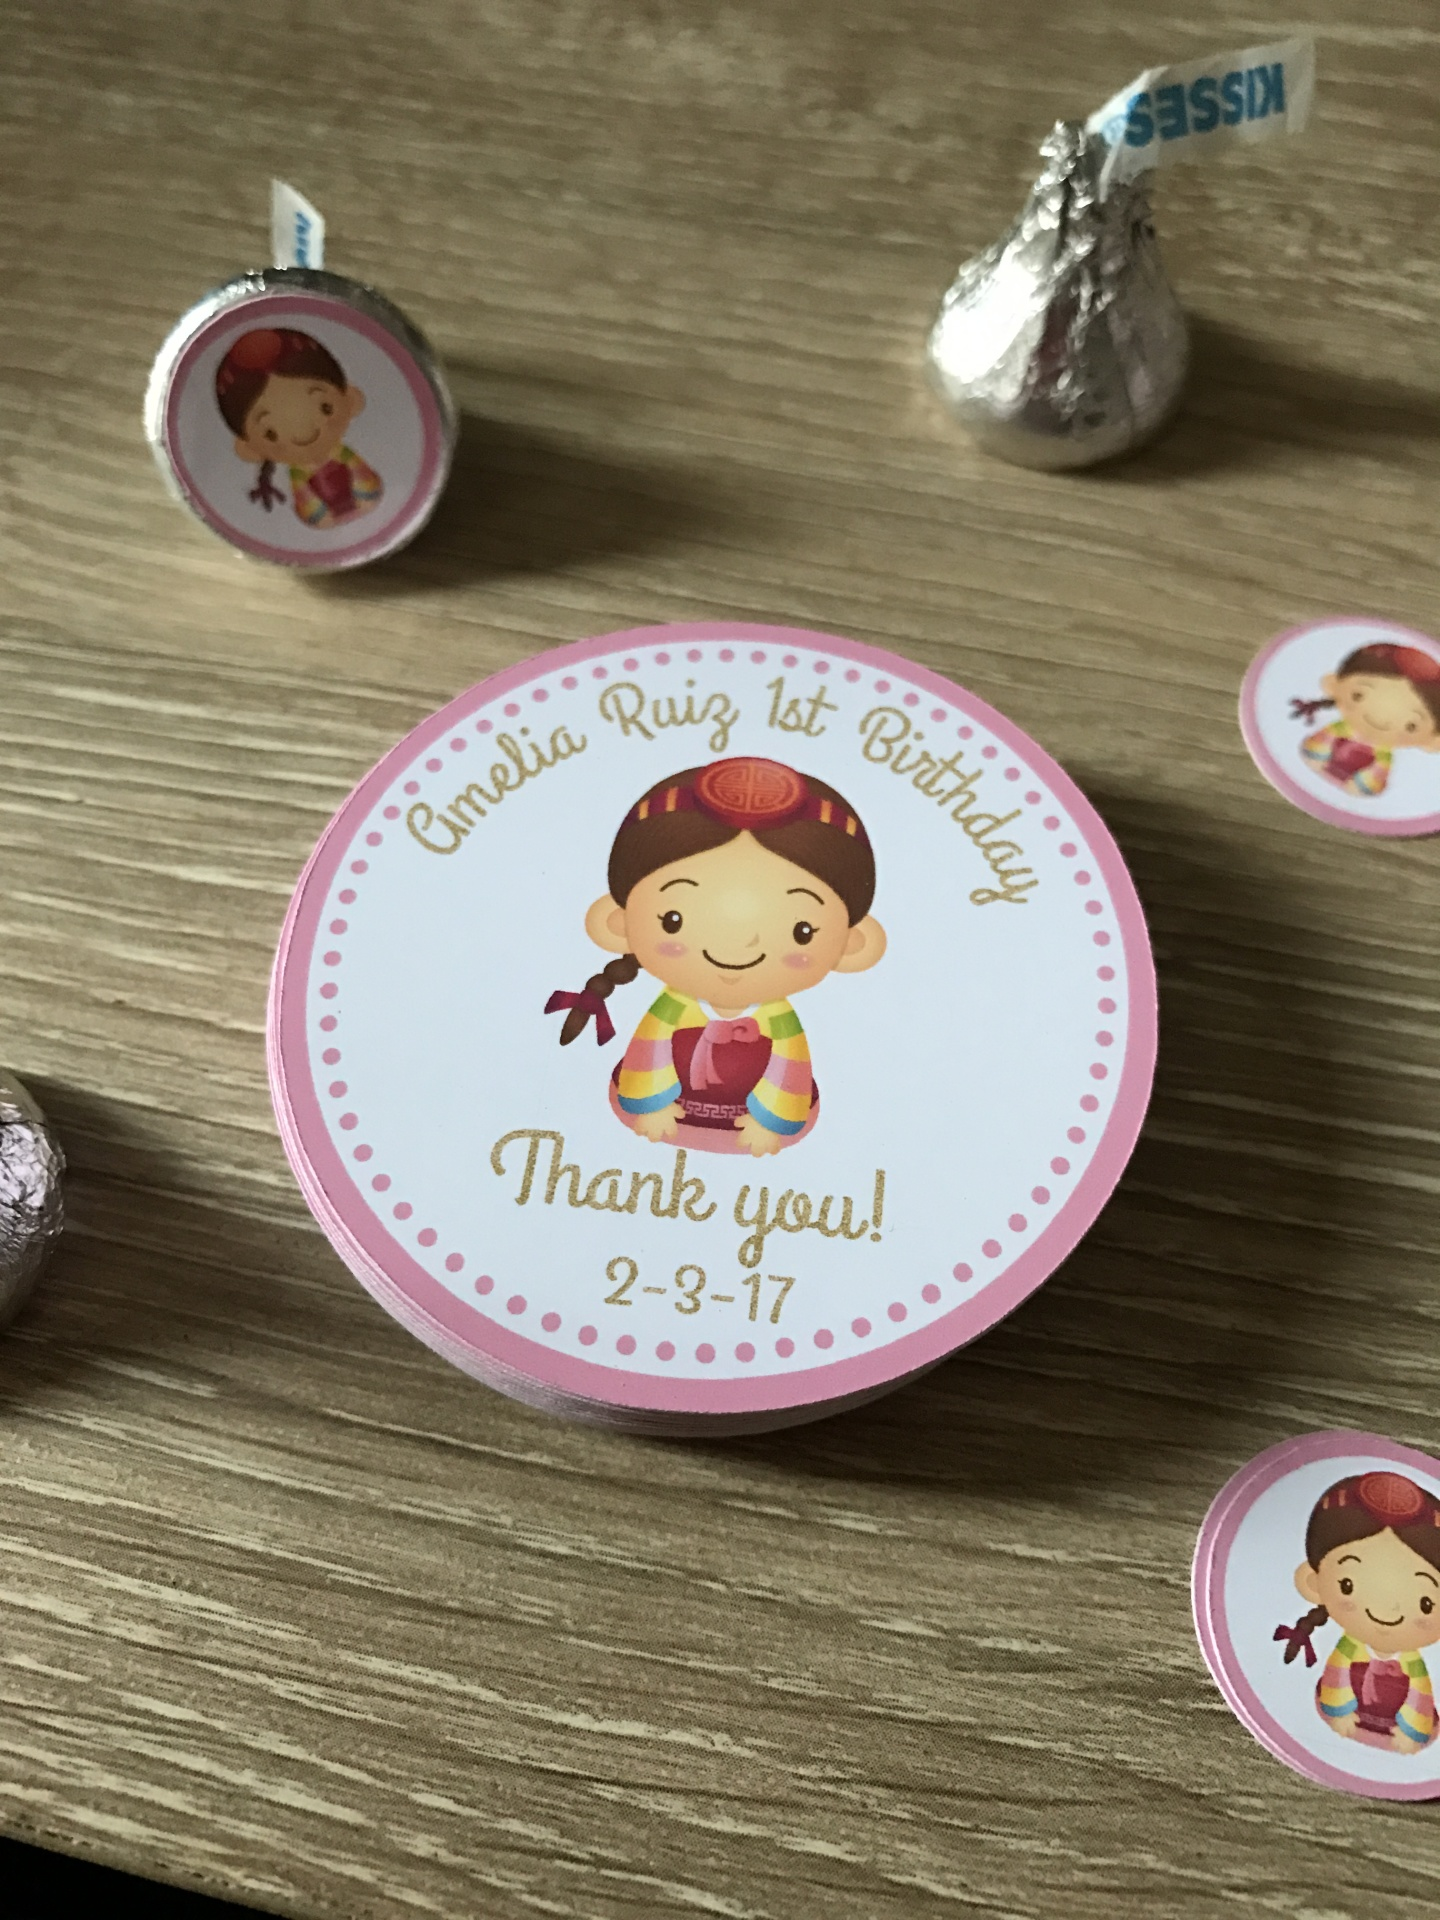 Korean Doljabi Party Favor stickers, Favor tags and Mini Bubble wands